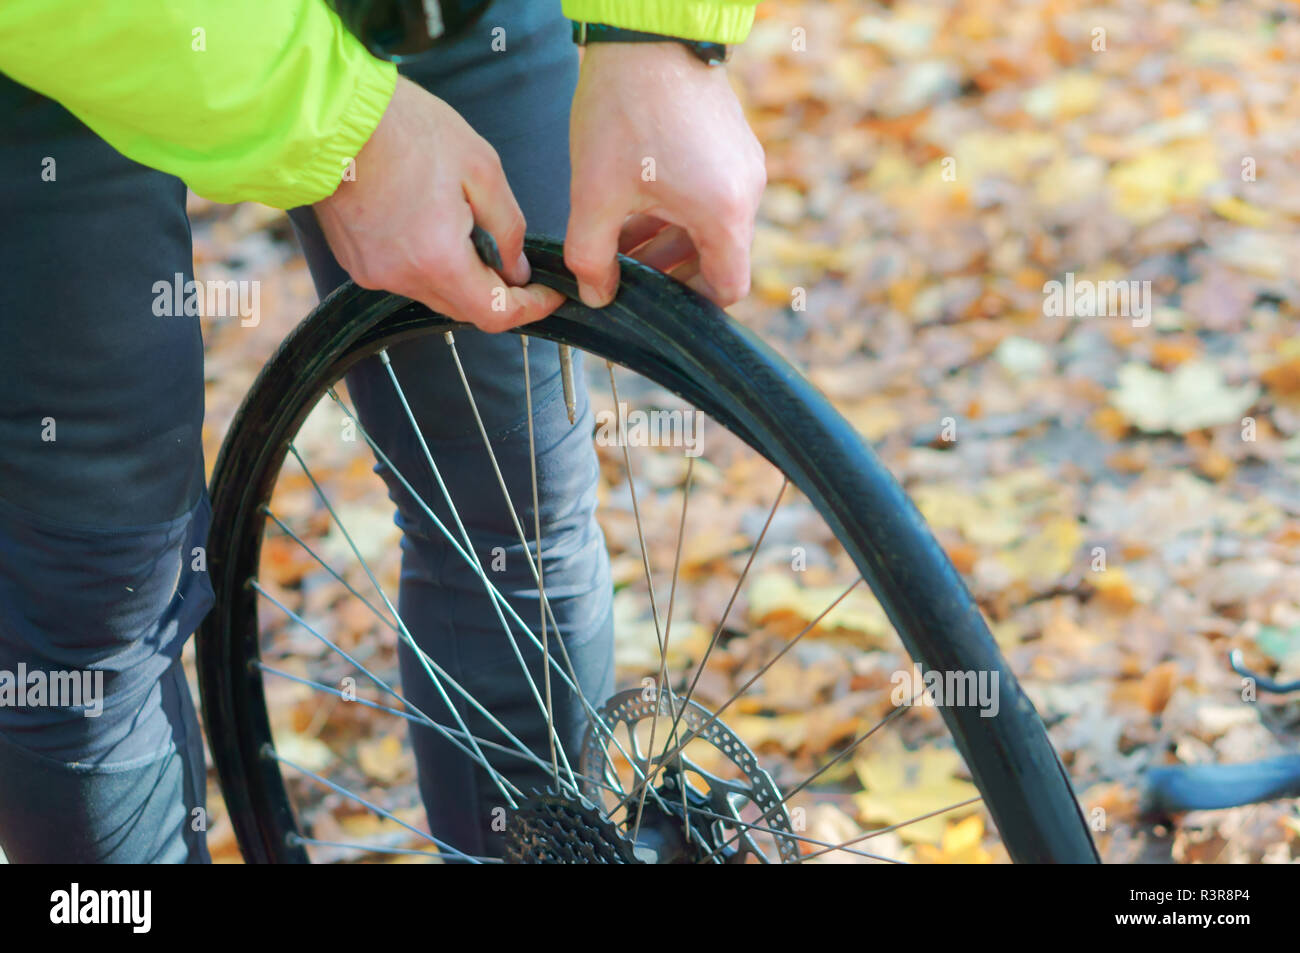 remove the tire from the wheel, disassemble the Bicycle wheel, repair the puncture of the bike - Stock Image